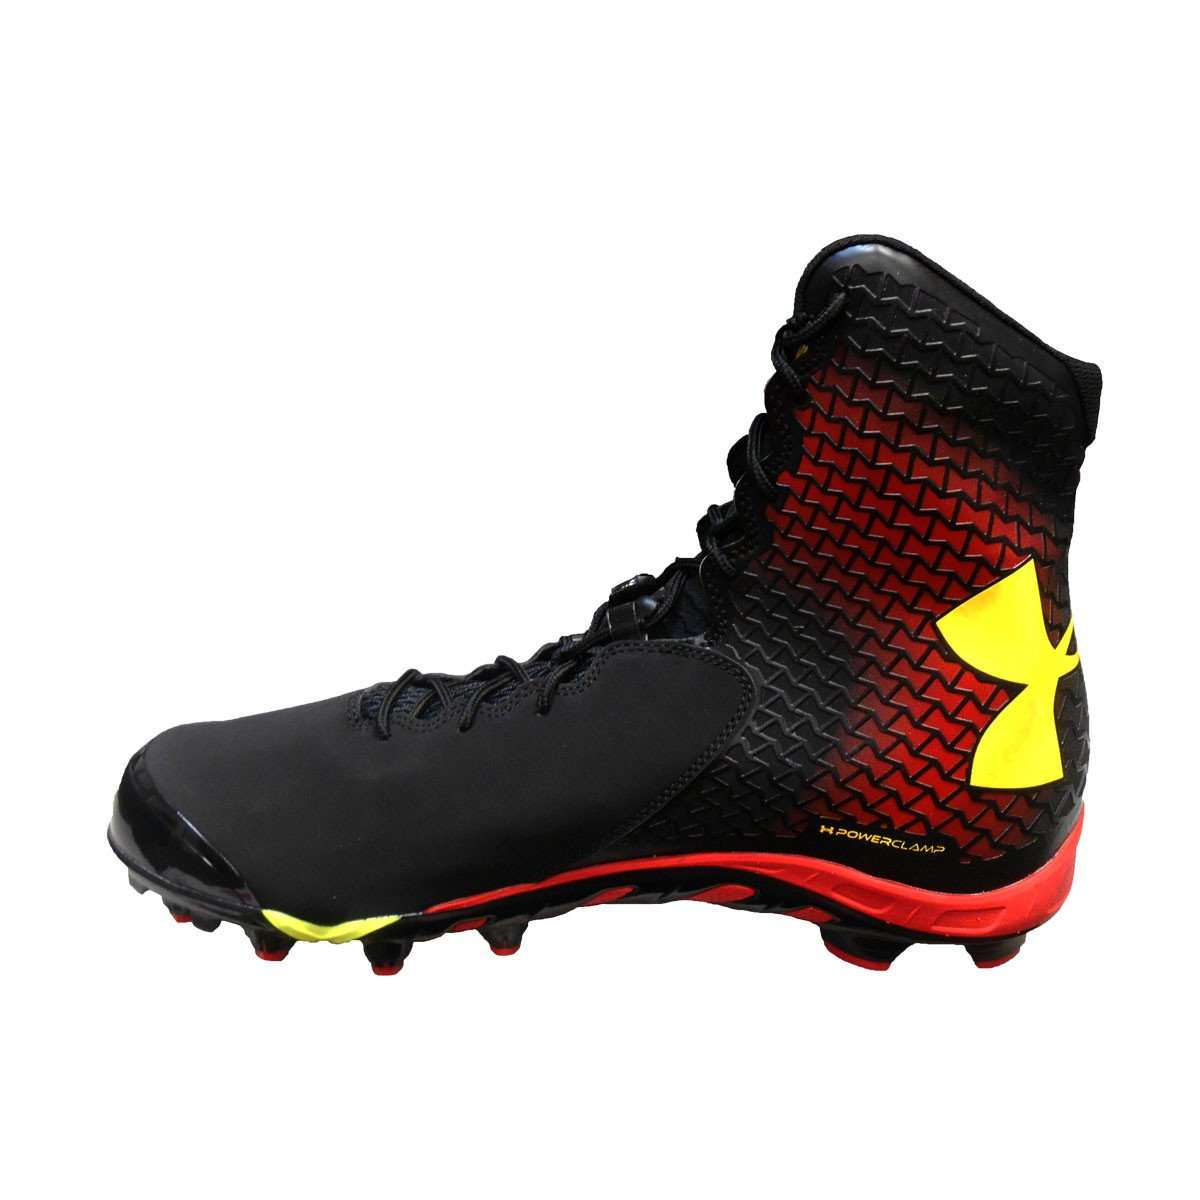 35f24f7f1261 ... Under Armour Team Spine Brawler Molded Football Cleats - League  Outfitters ...